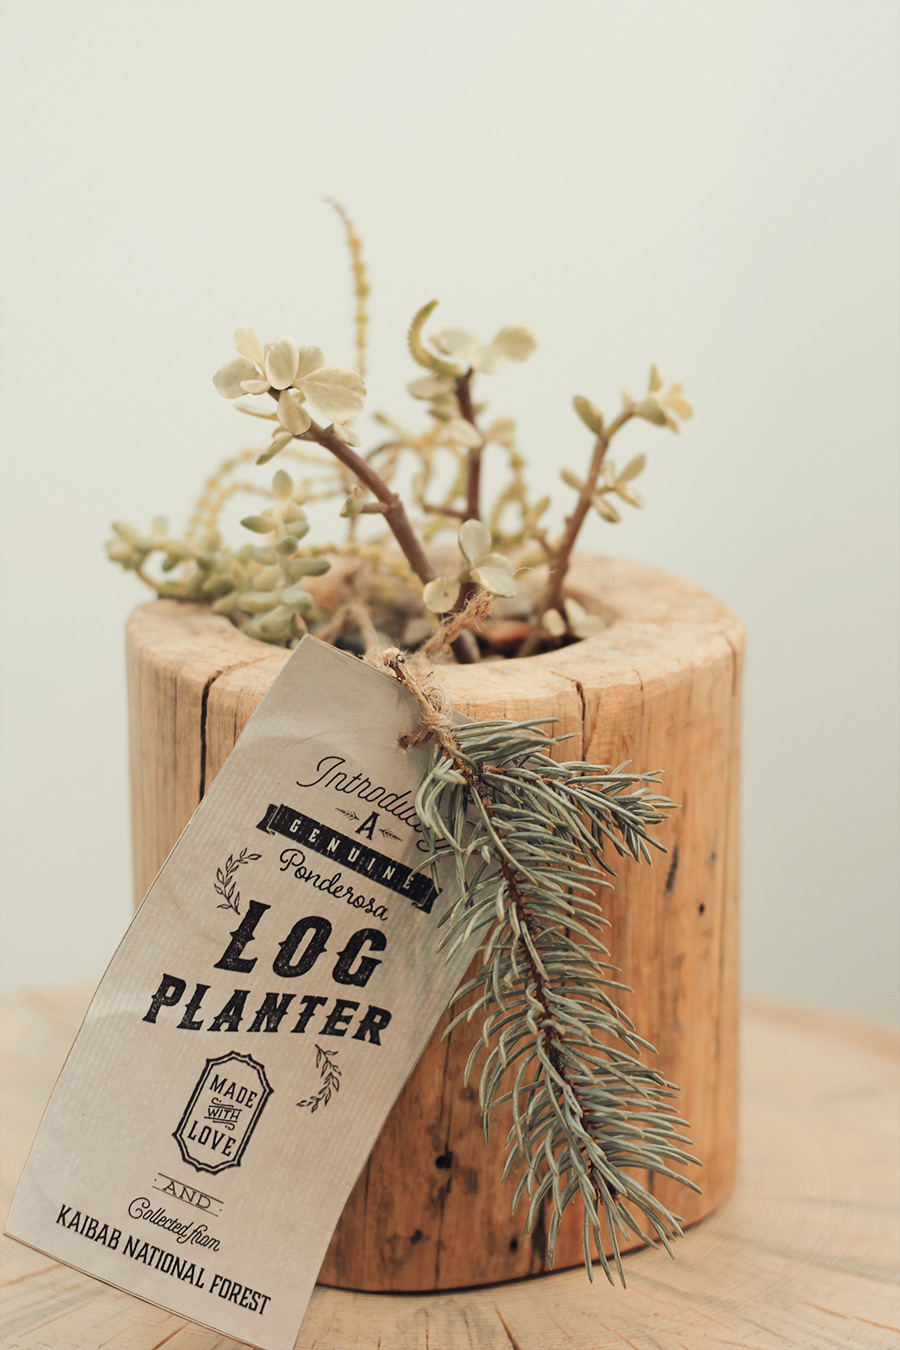 log planter by Jeff Hendrickson